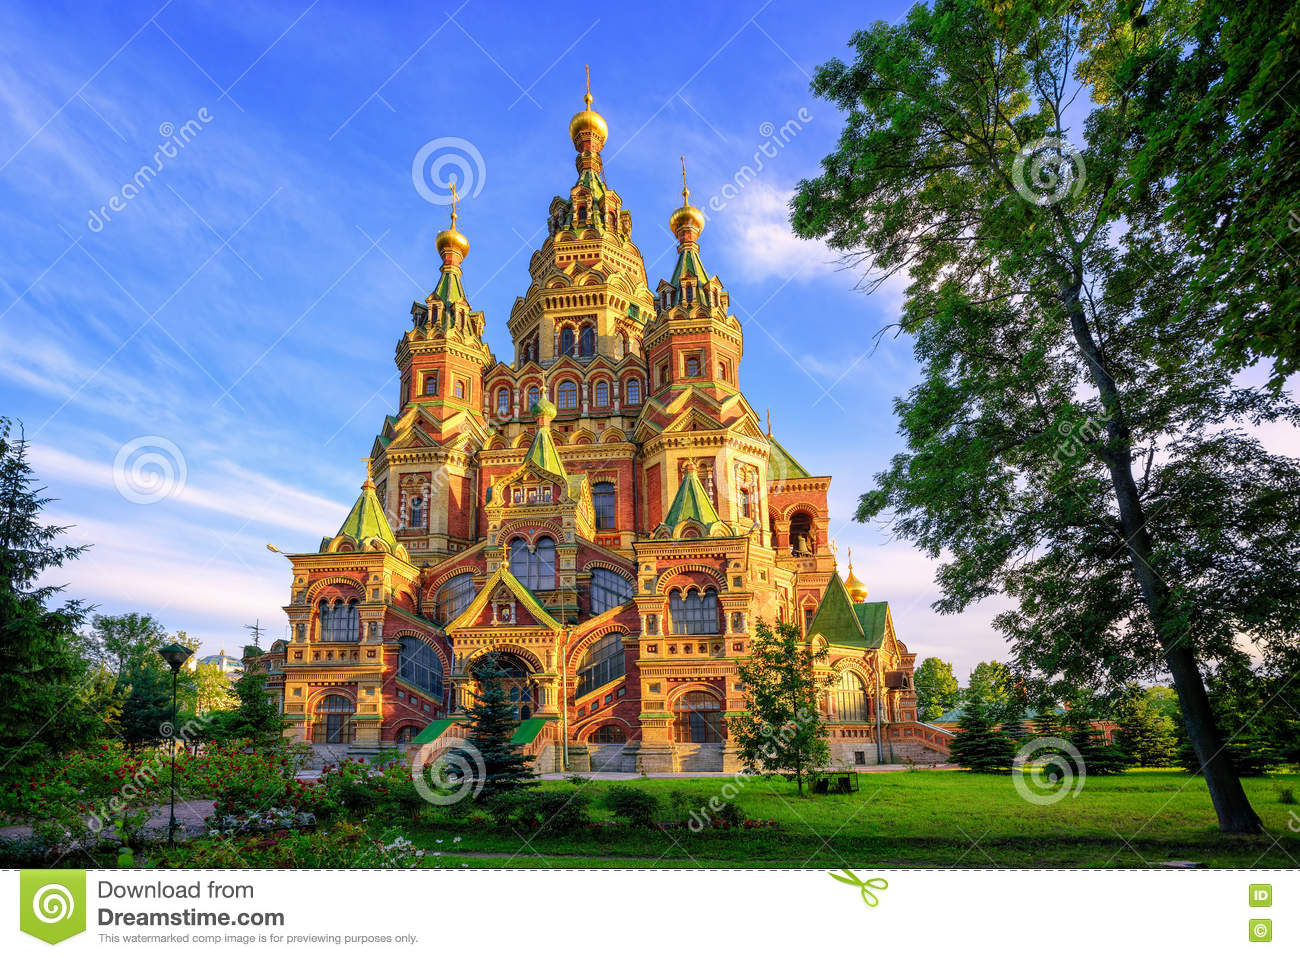 Église orthodoxe russe, St Petersburg, Russie